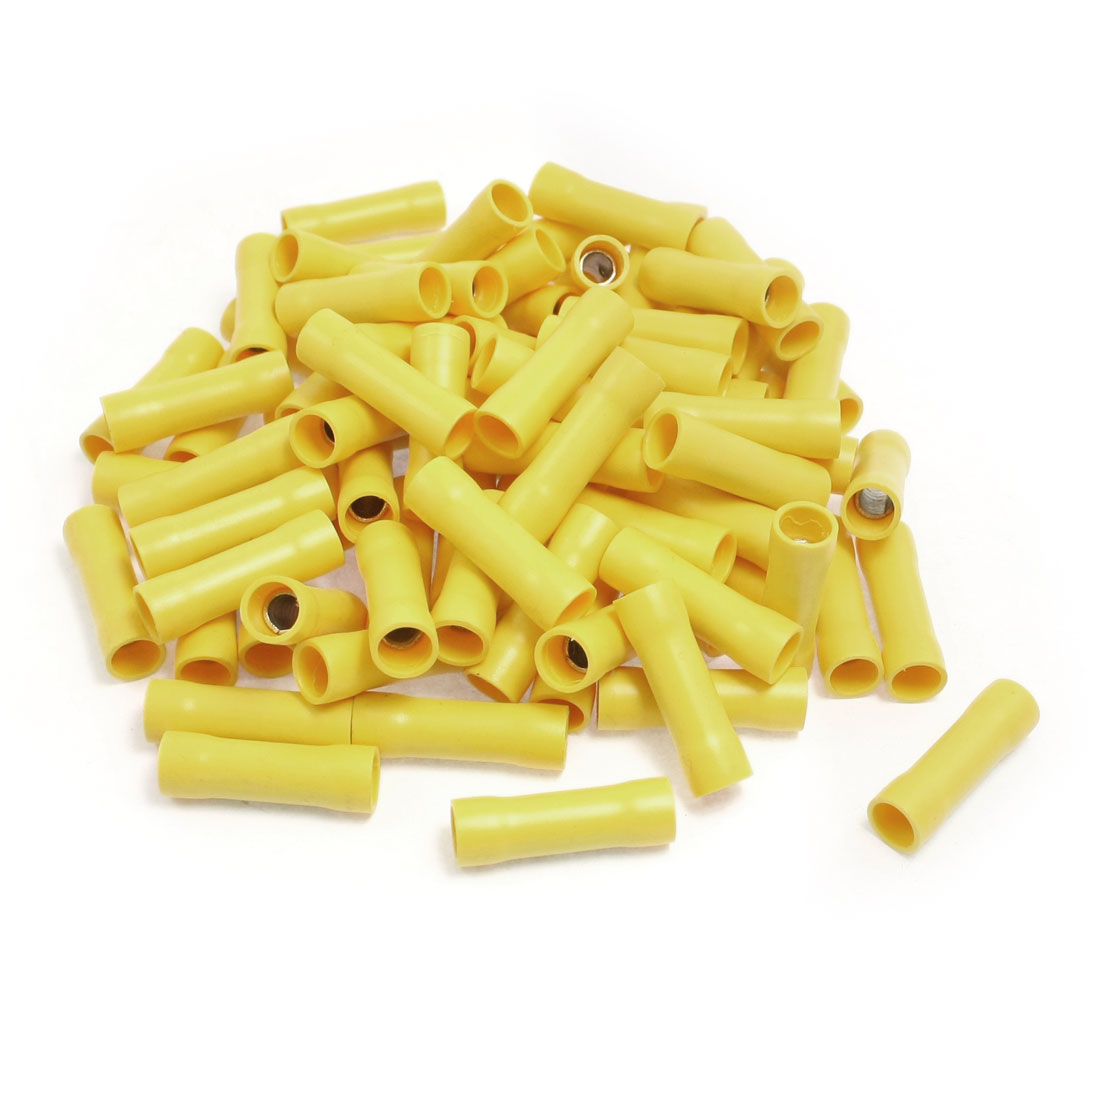 100 Pcs FRD2-195 Yellow PVC Fully Insulated Sleeve Crimp Terminals for AWG 16-14